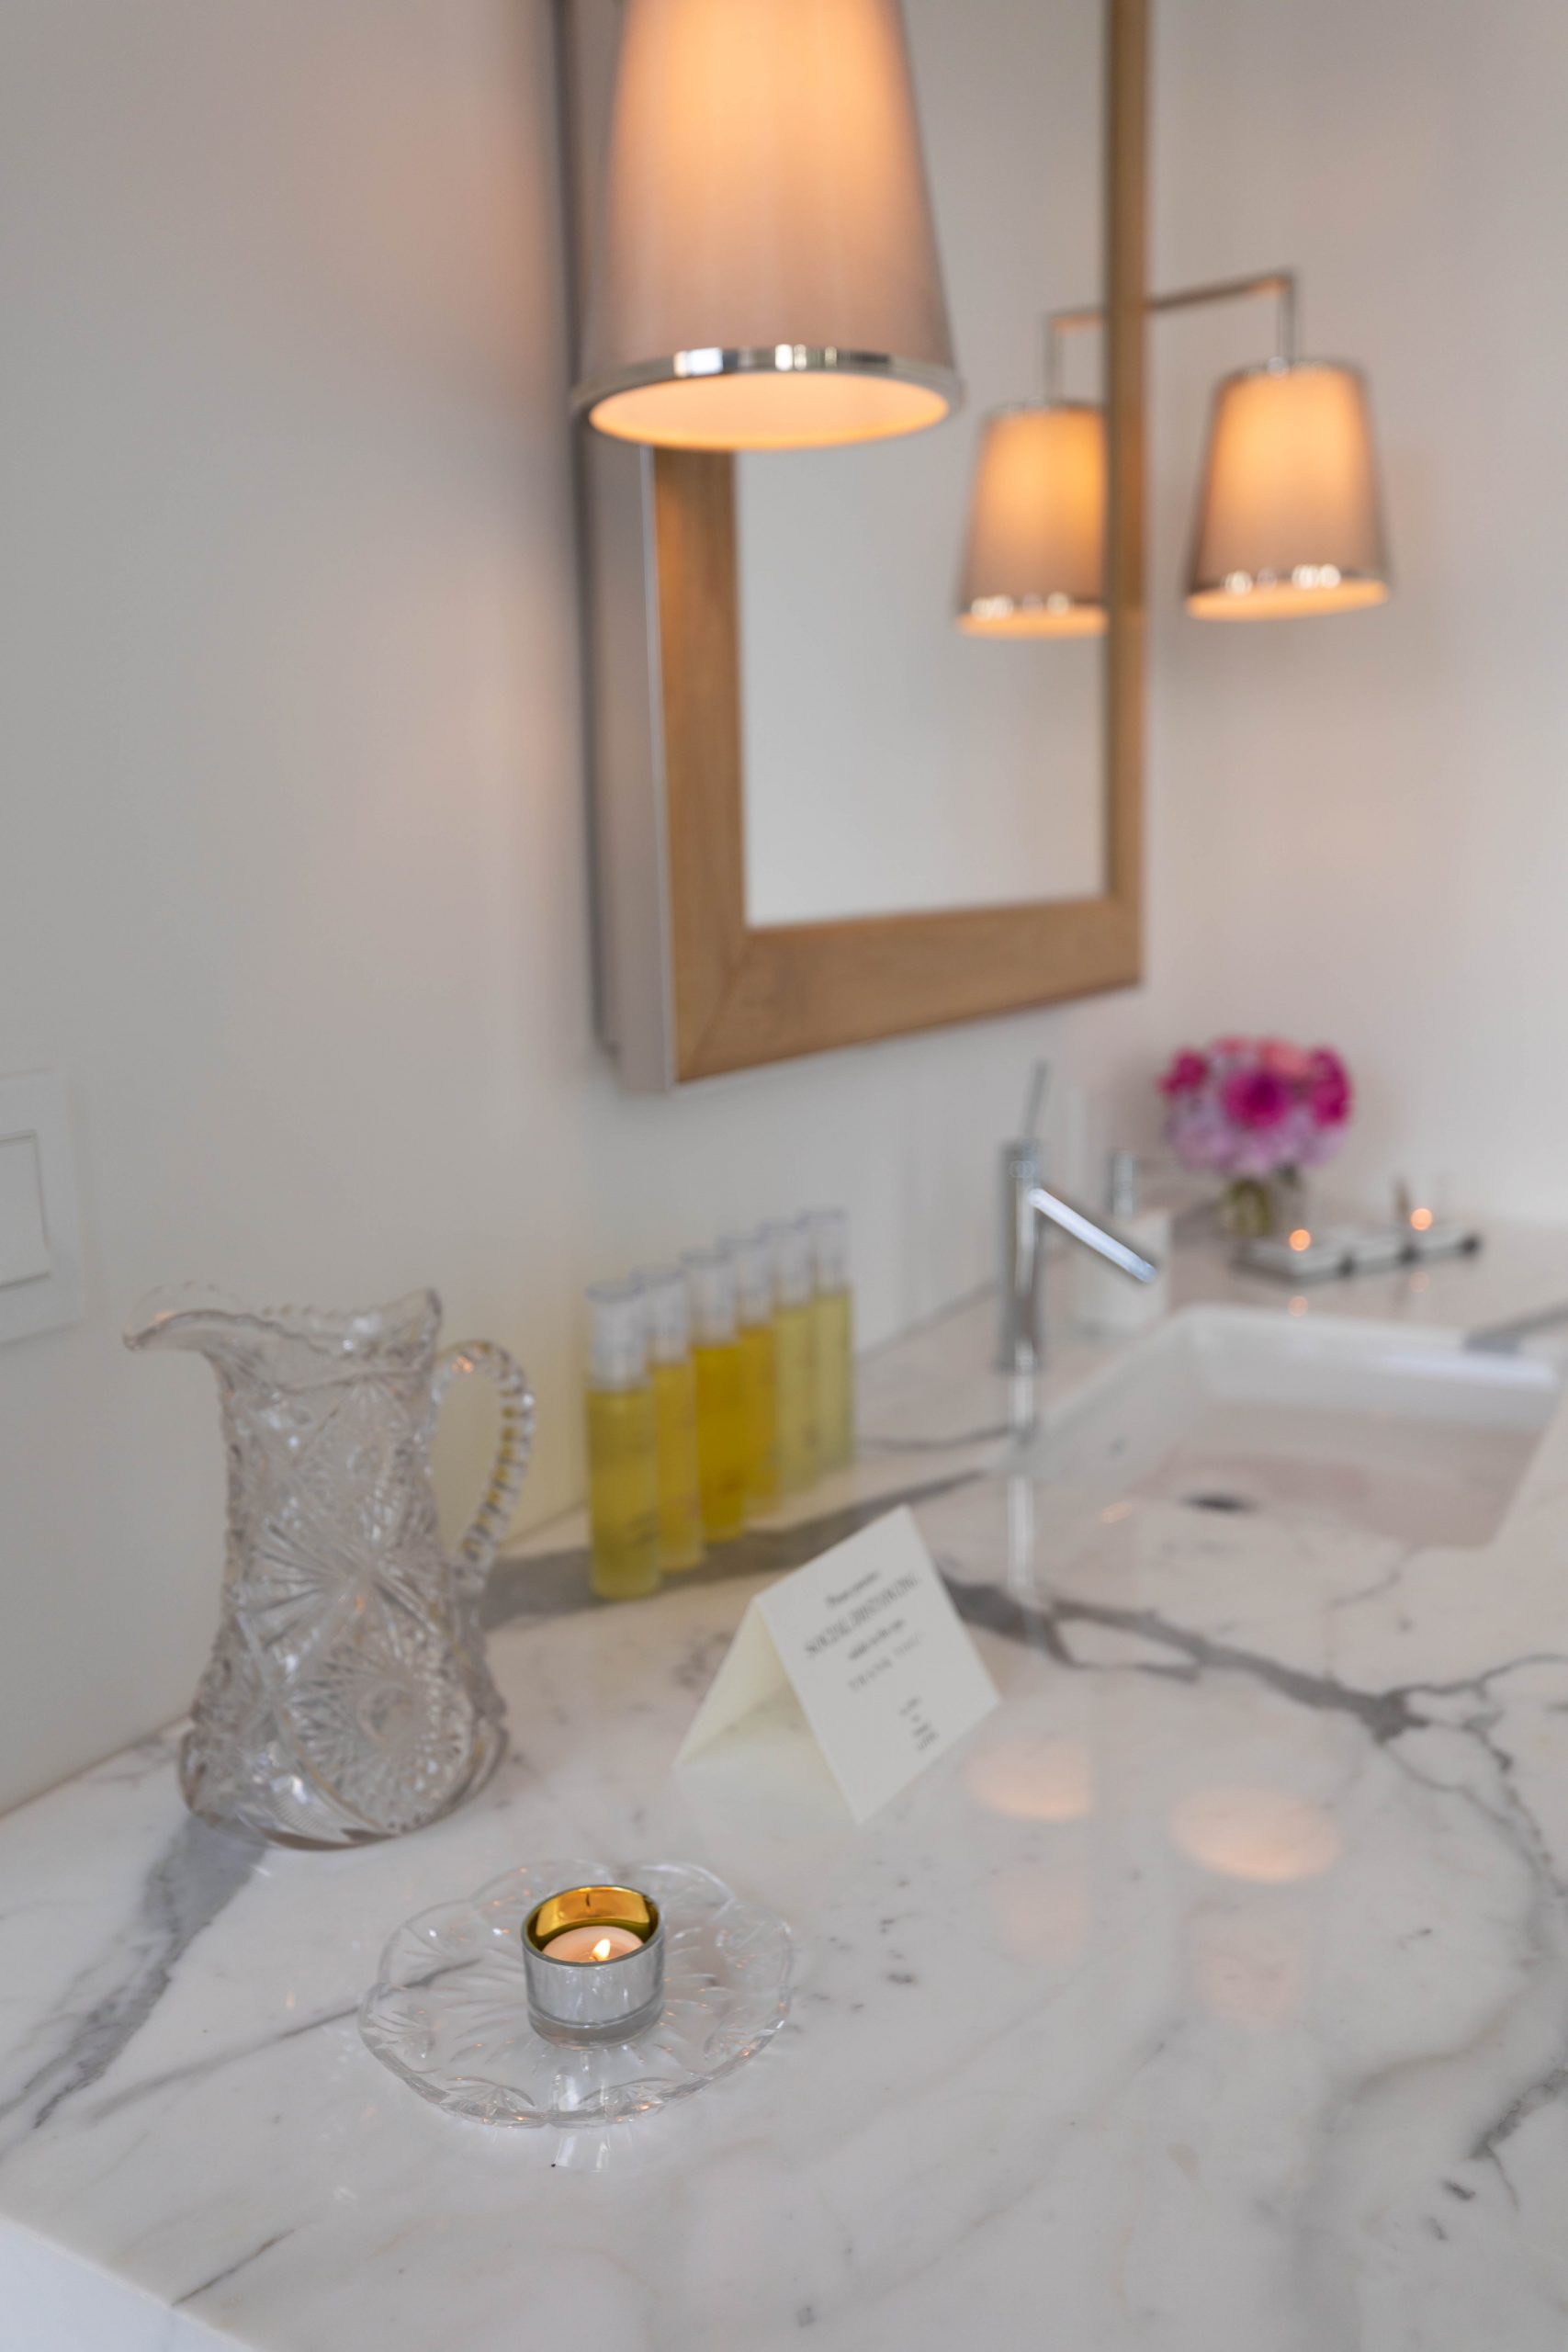 Couple's Treatment Room at Le SPA de l'hôtel Lotte at Lotte Hotel Seattle Grand Opening by Annie Fairfax Puget Sound Luxury Hotels